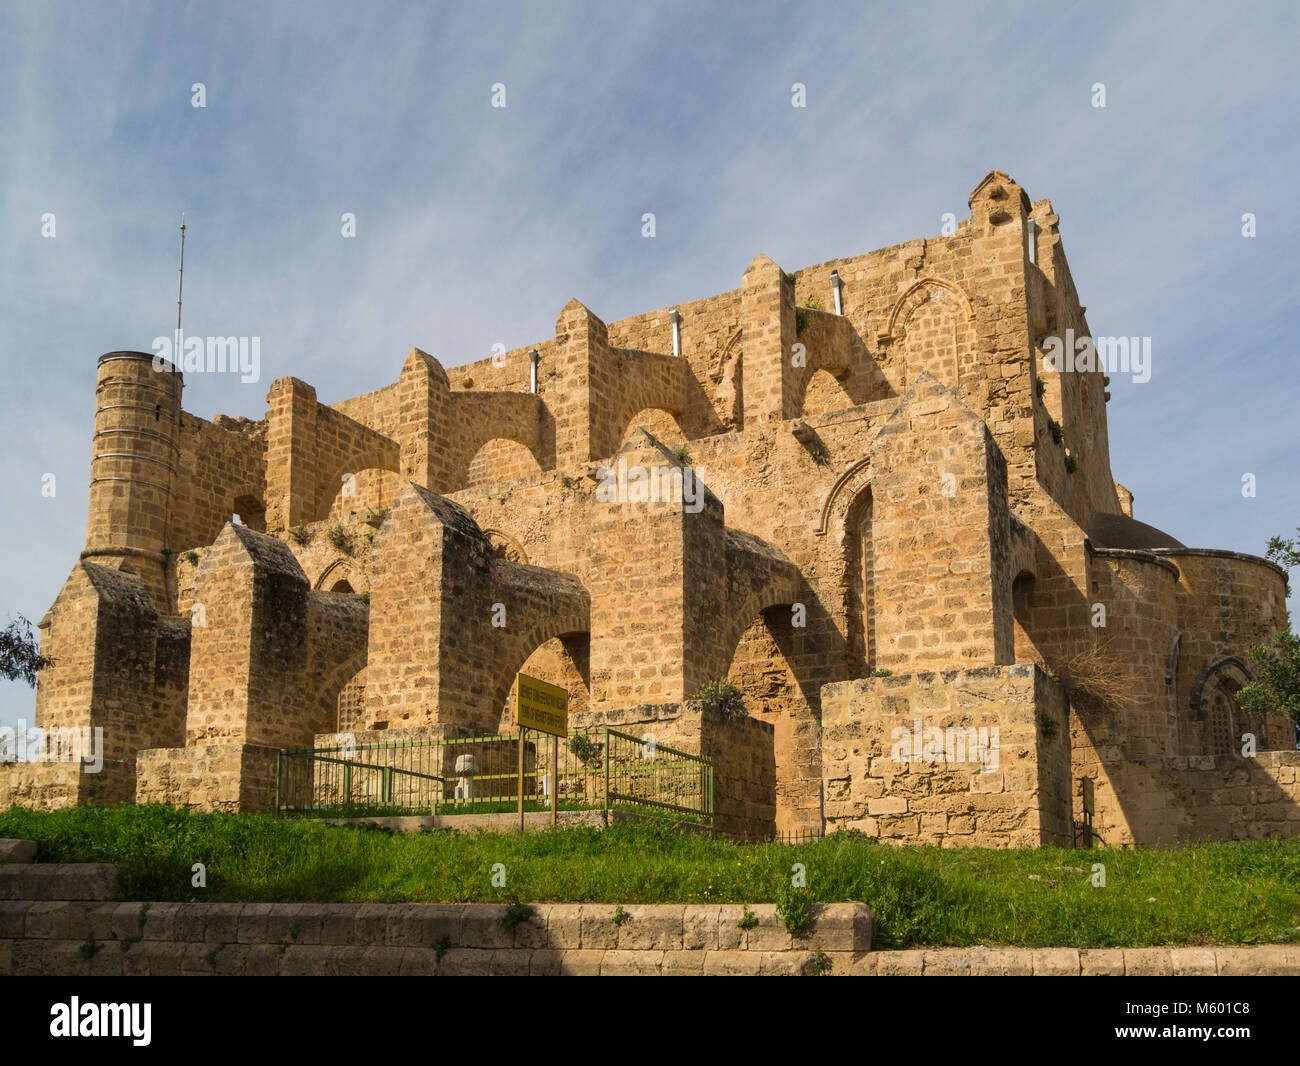 Church of Sts. Peter and Paul (1359) was converted into a mosque in 1571  renamed as the Sinan Pasha Mosque Famagusta - Stock Image